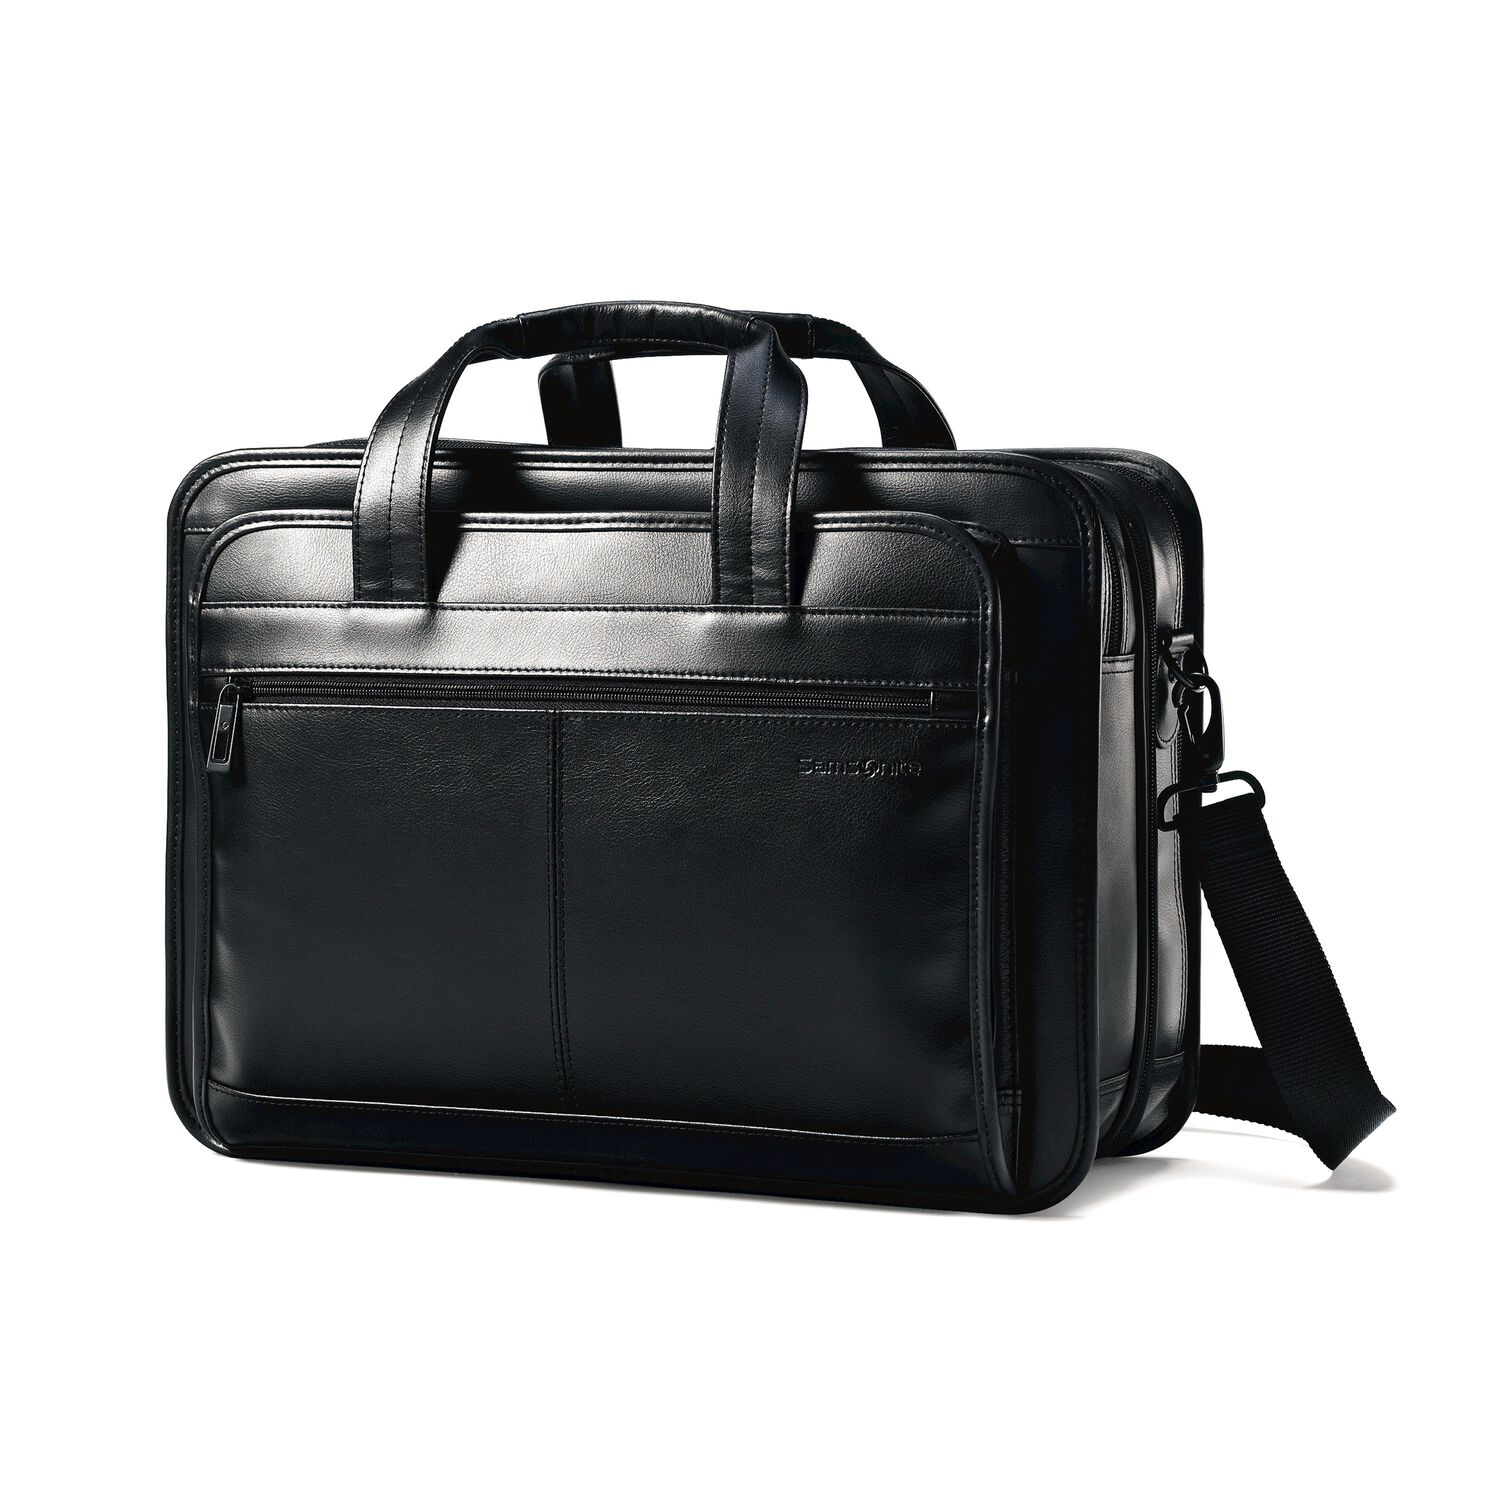 2a1a3365ff11 Samsonite Leather Expandable Business Case